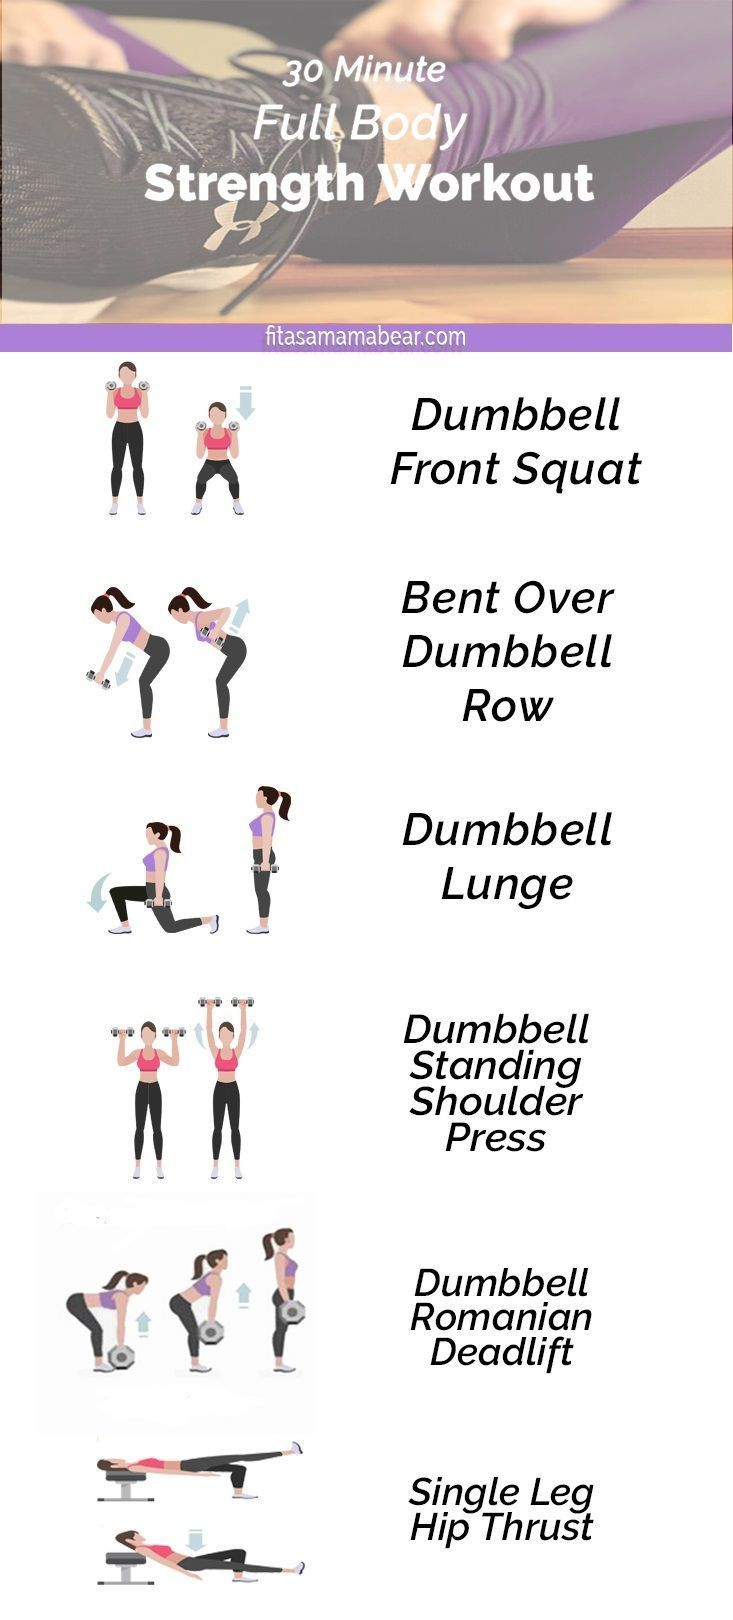 Dumbbell Only Workout For Strong Toned Muscles